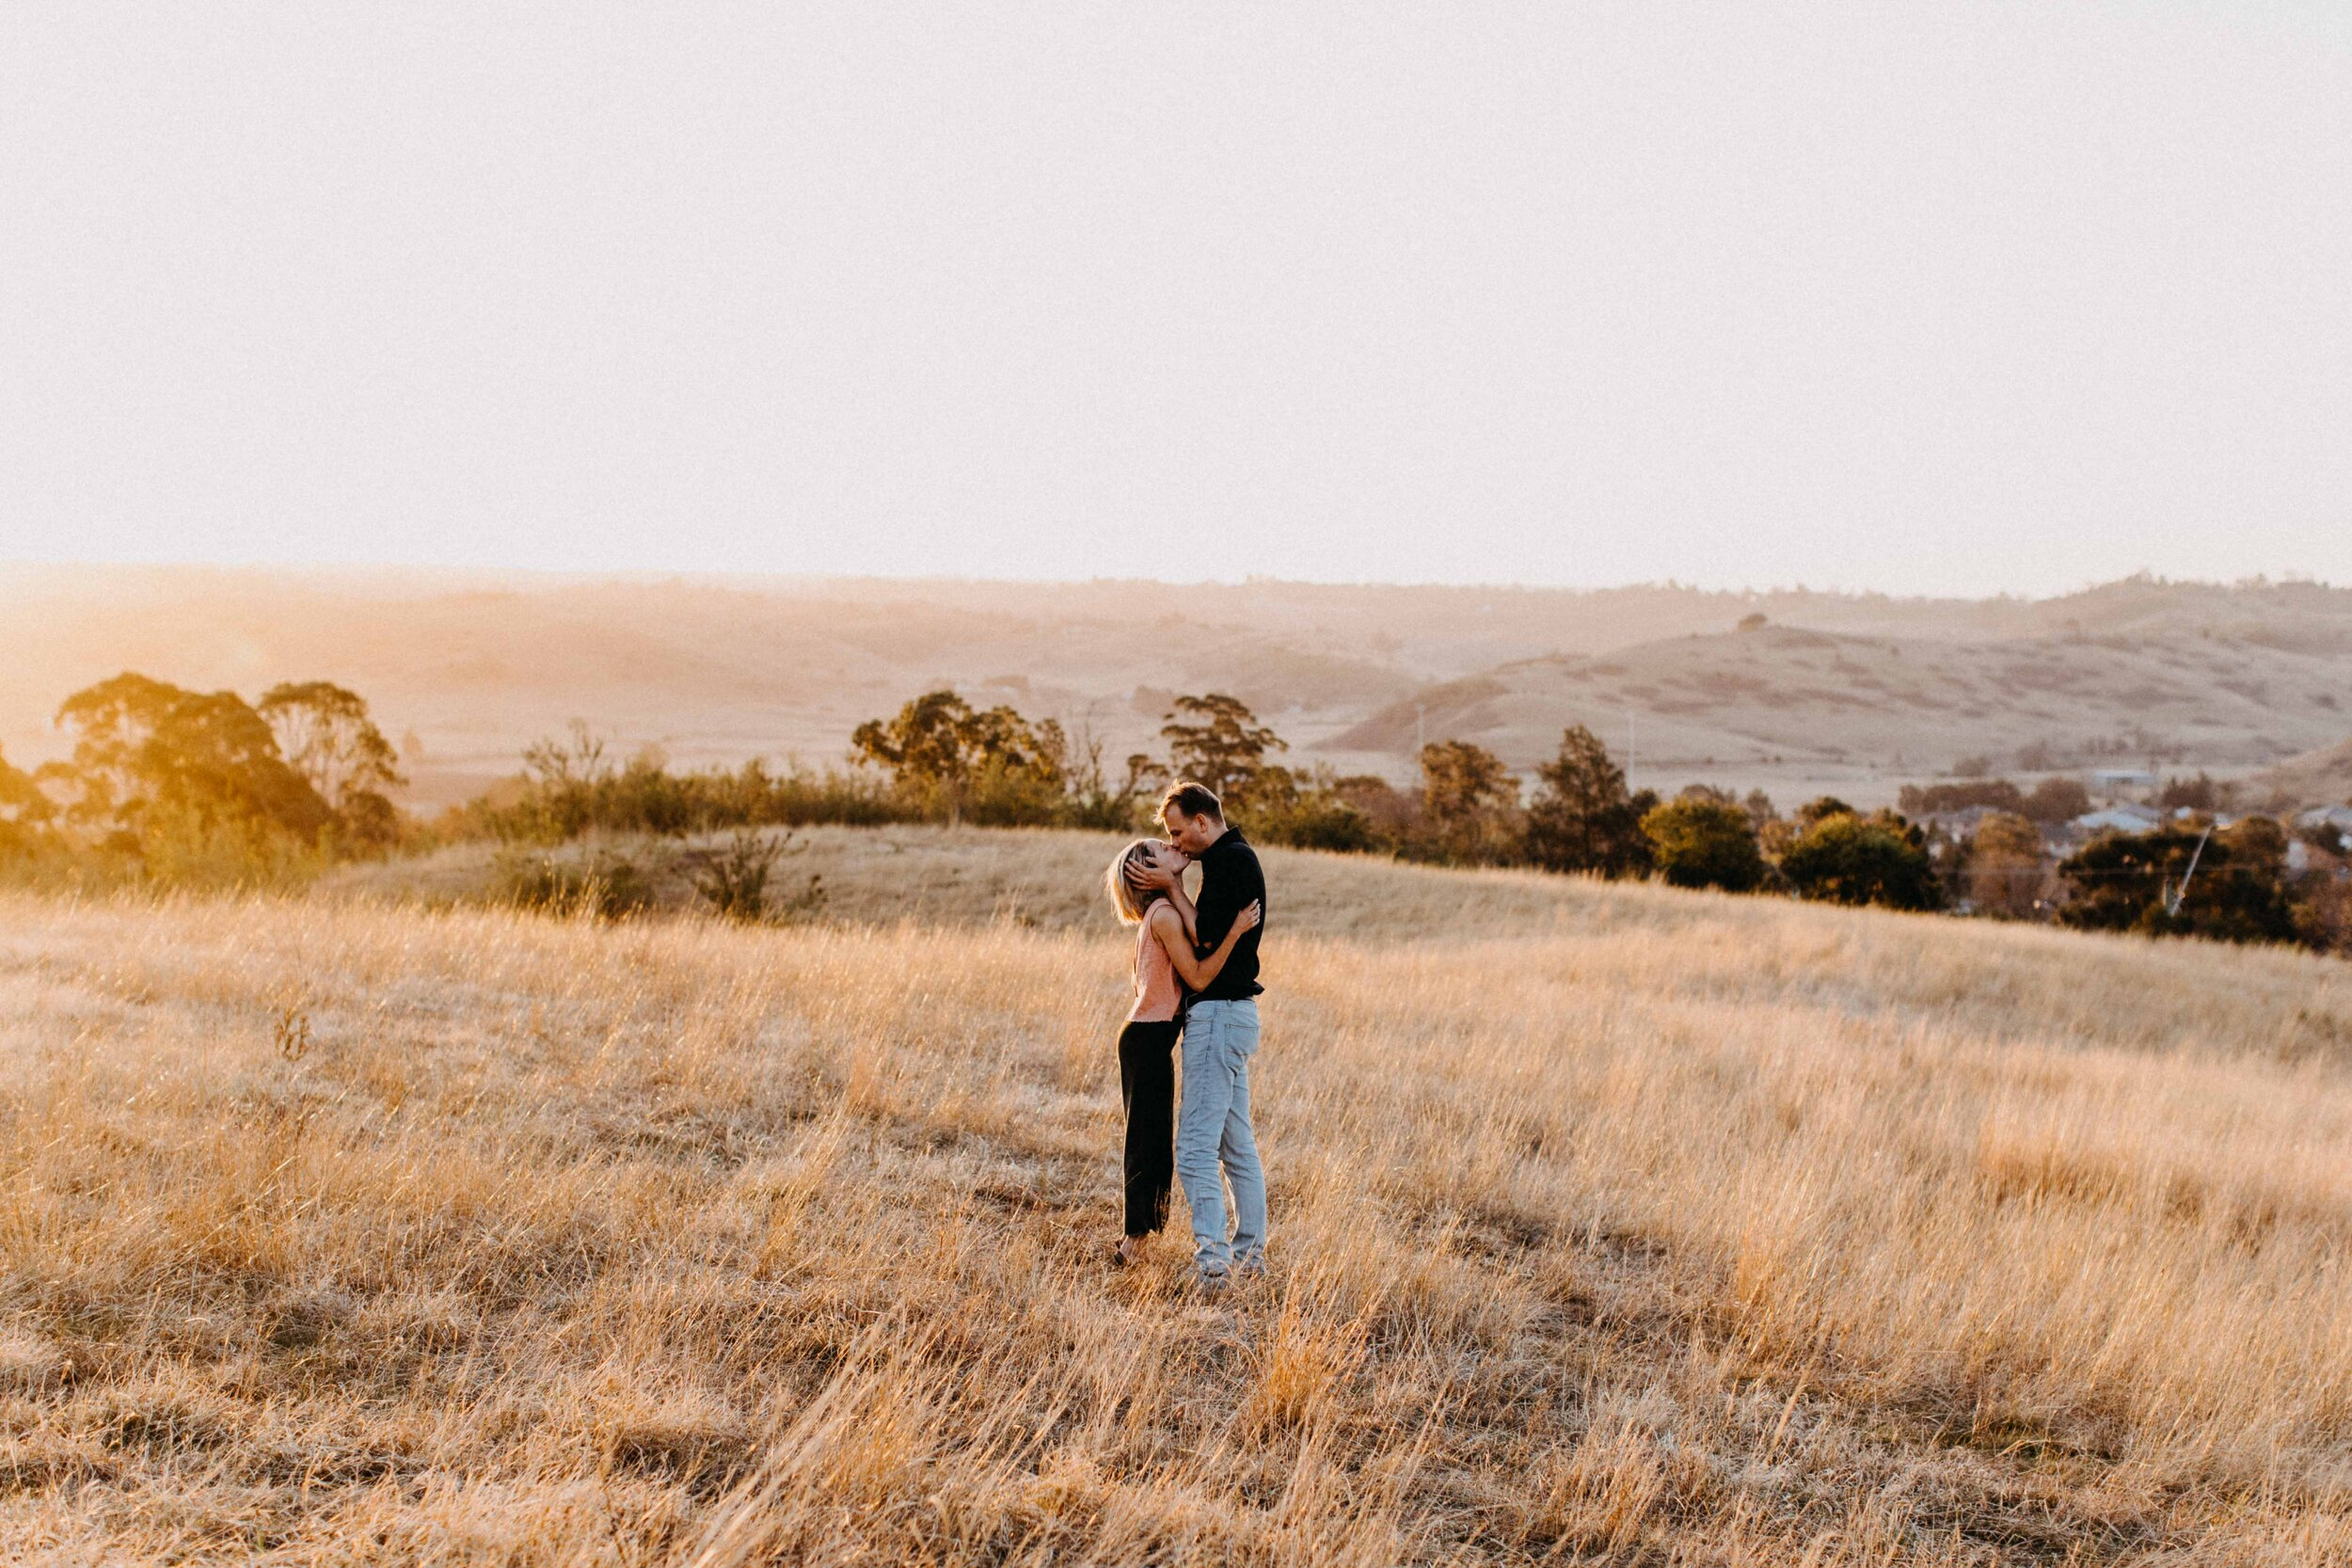 picton-engagement-photographer-wollondilly-david-esther-37.jpg